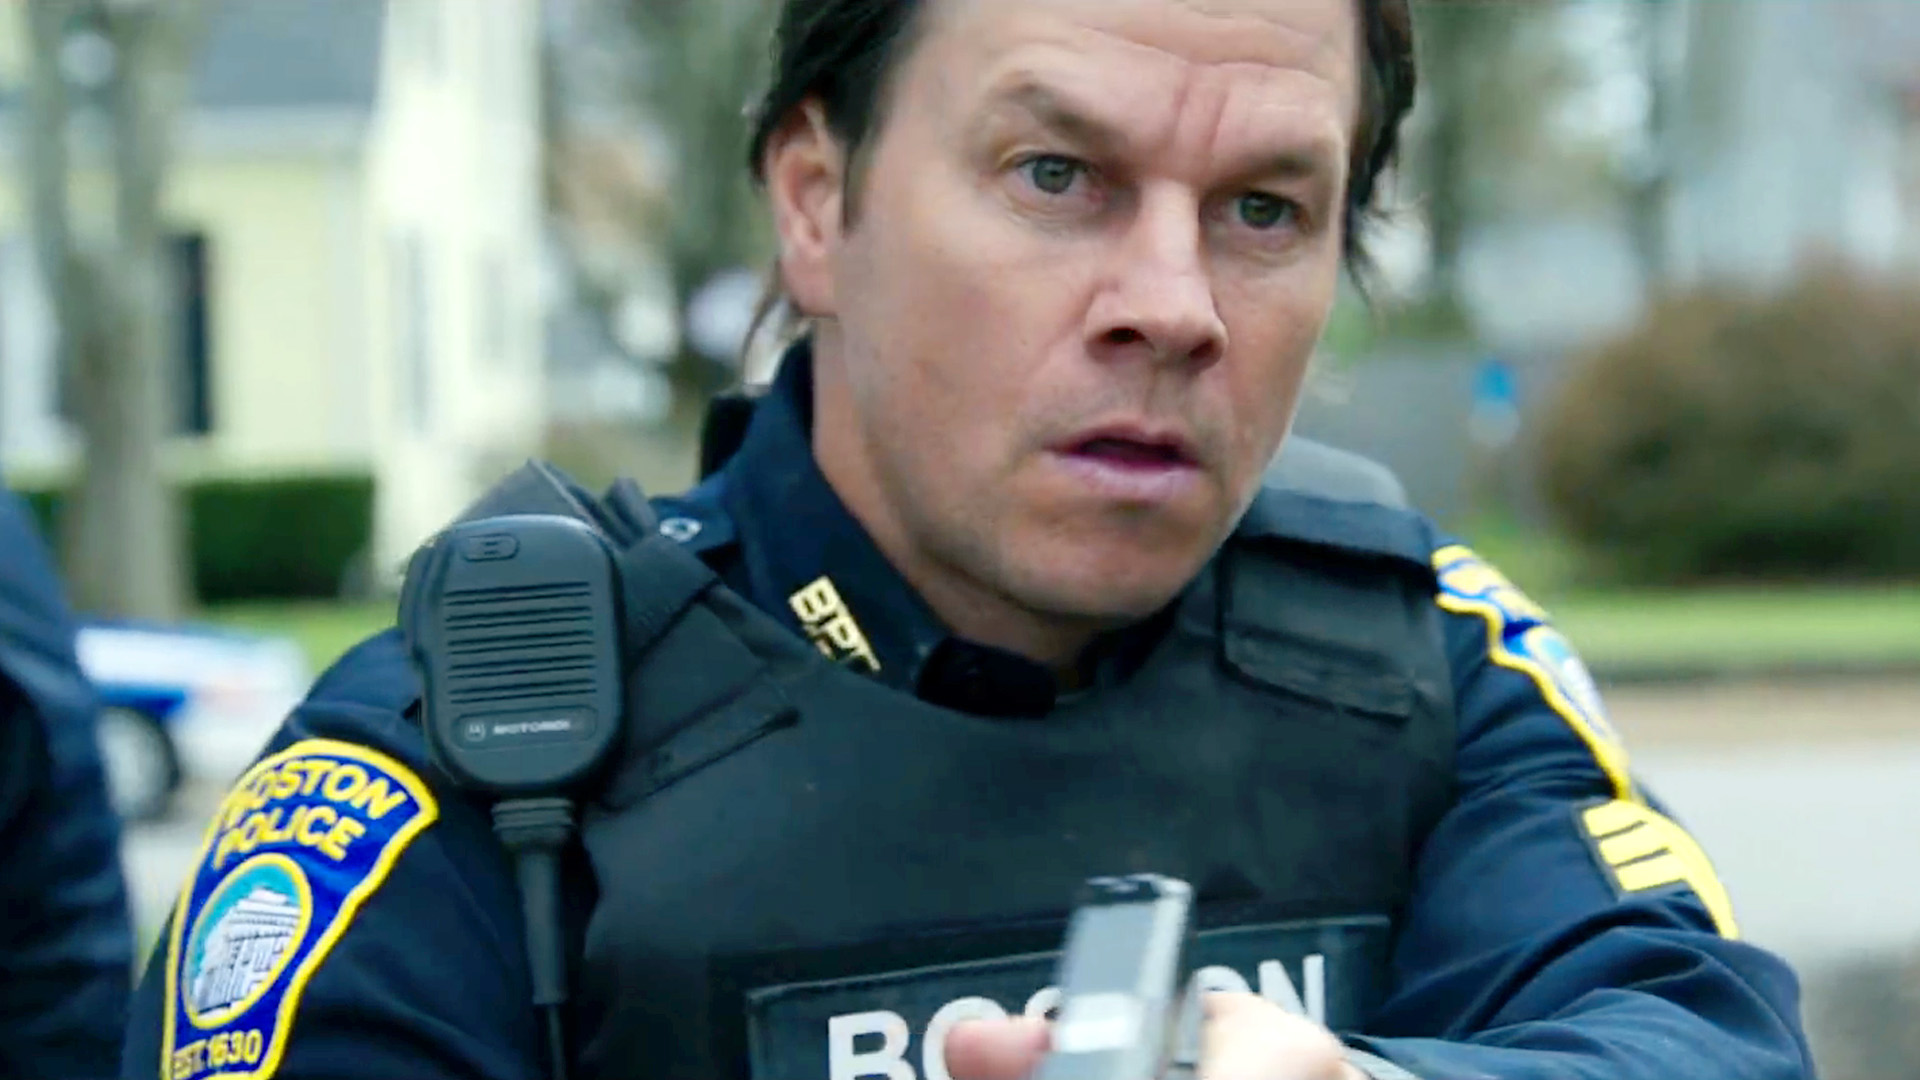 patriots day Patriots day is a 2016 american crime drama film about the 2013 boston marathon bombing and the subsequent terrorist manhunt directed by peter berg and written by berg, matt cook, and joshua zetumer, the film is based on the book boston strong by casey sherman and dave wedge.